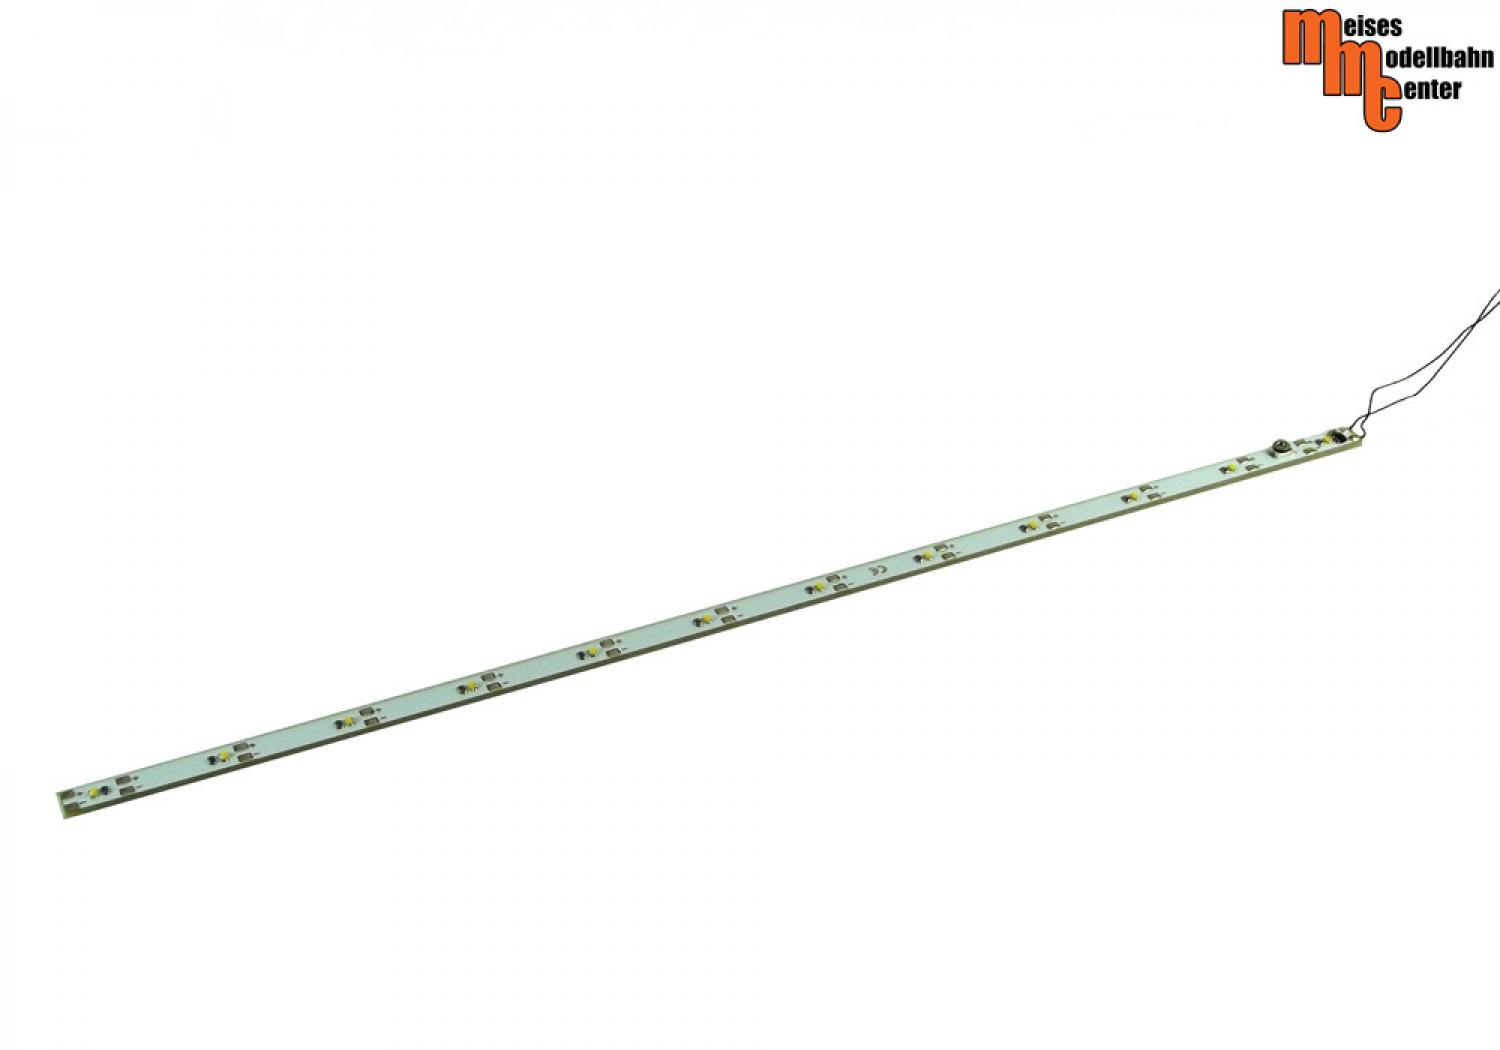 LED-Innenbeleuchtung 230mm (12 LEDs) warmweiß